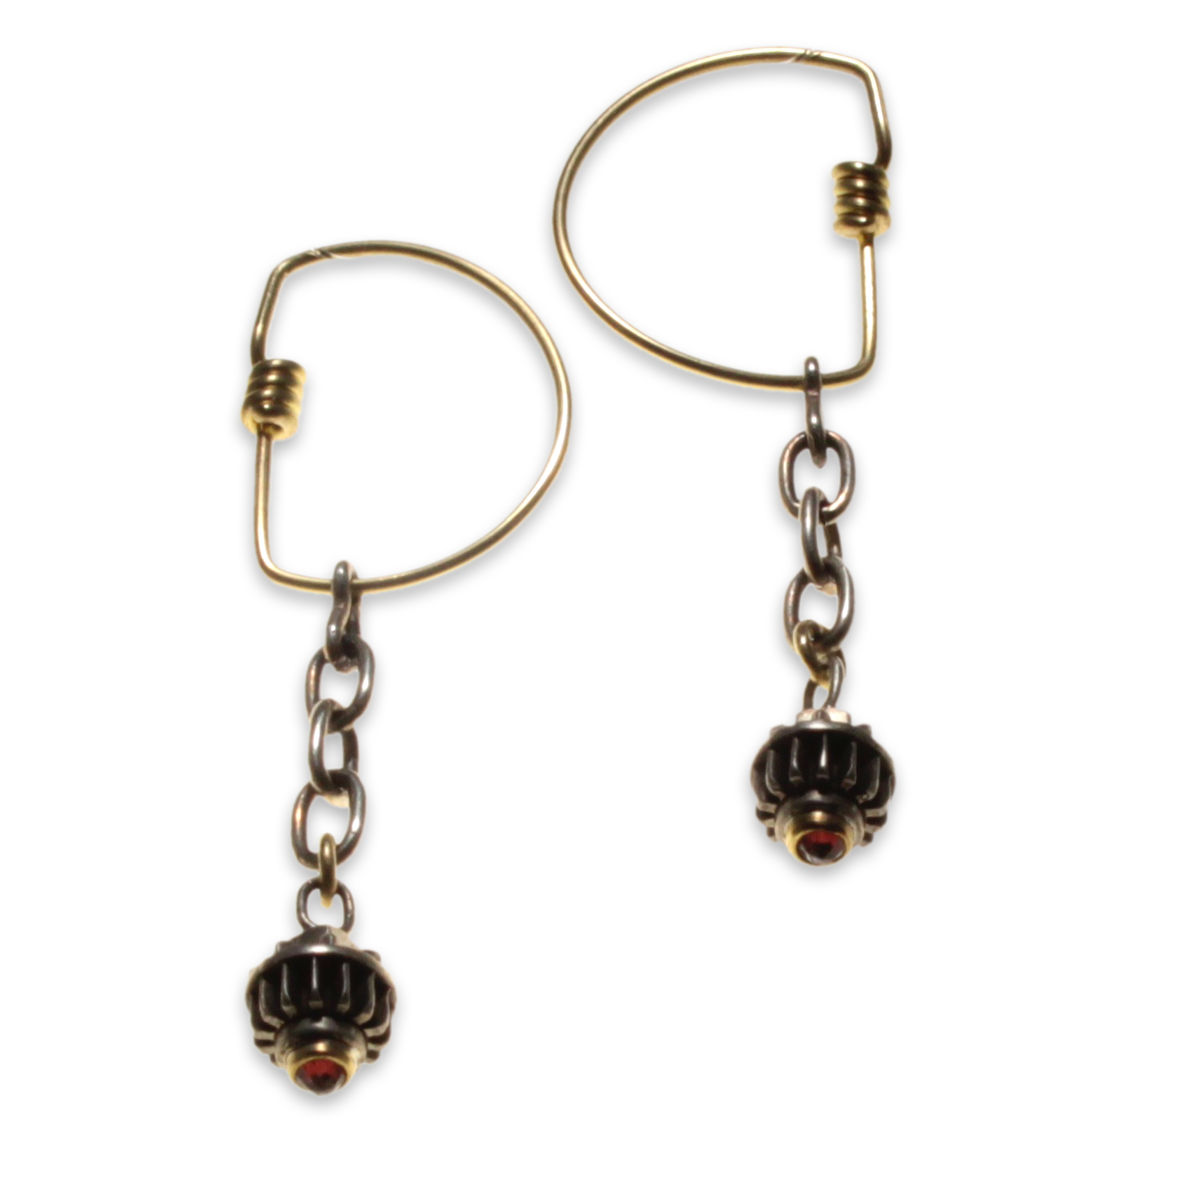 8pT.chain Hoop Earrings - product image